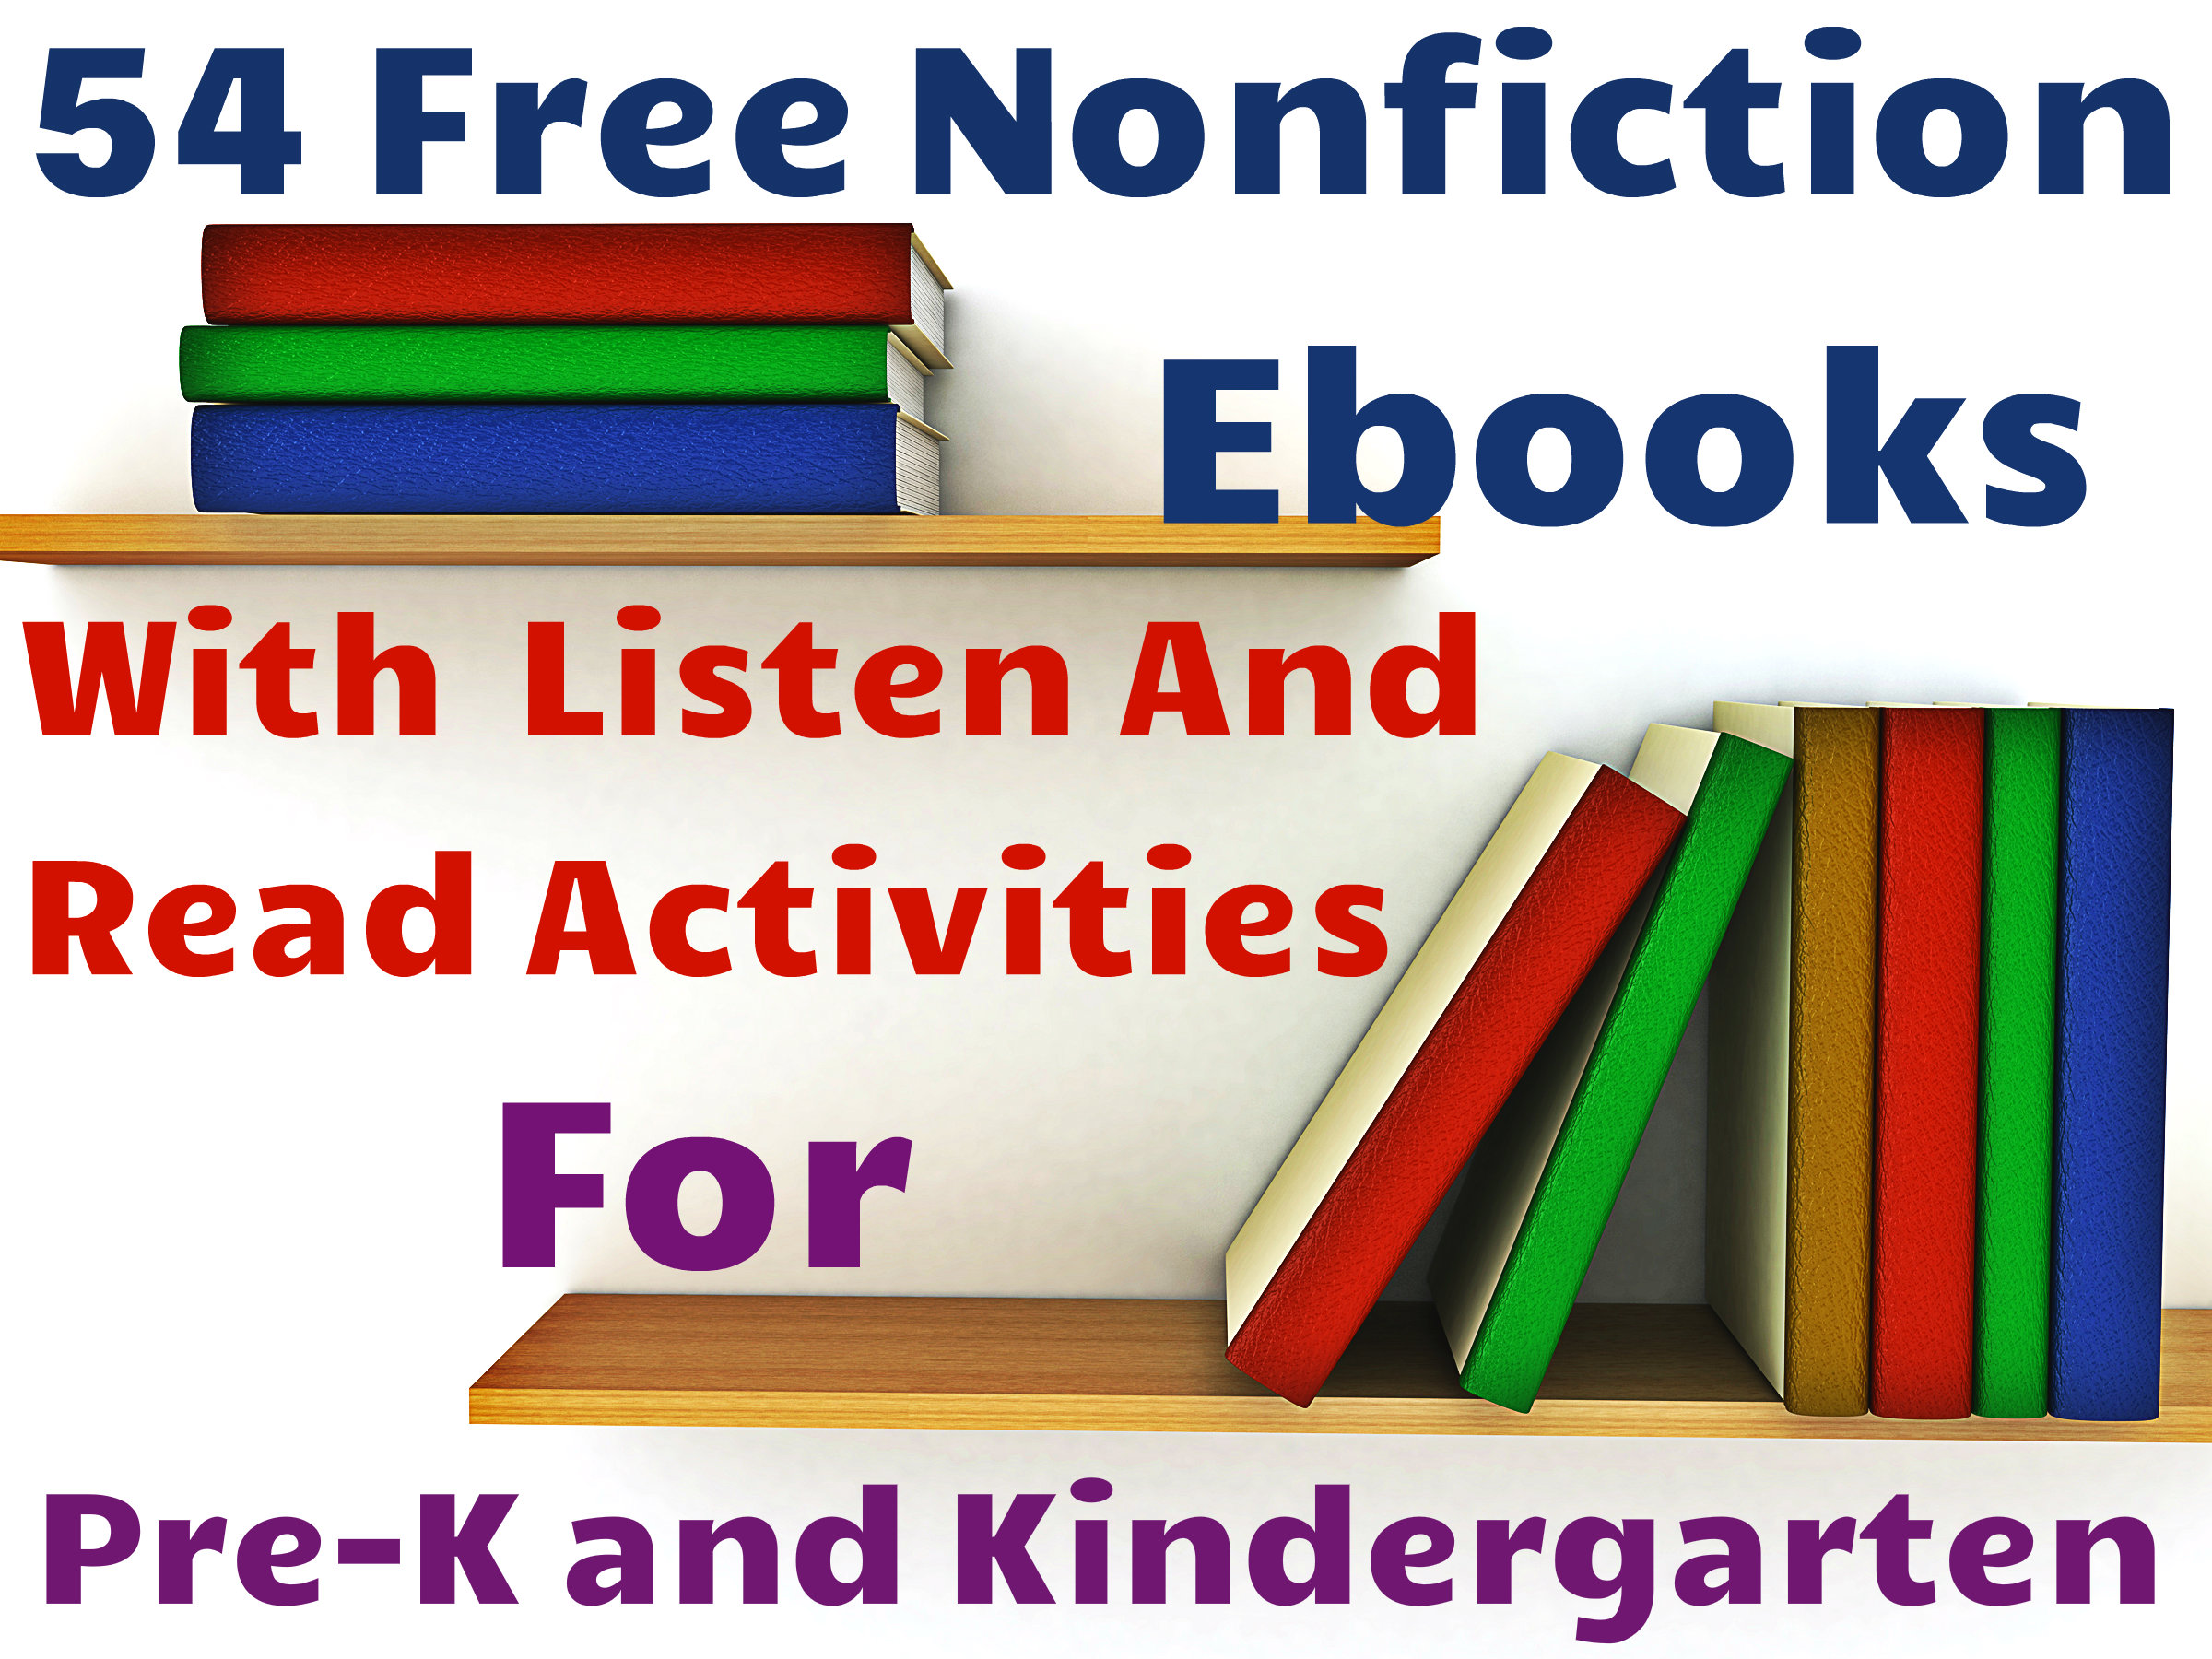 Free Nonfiction Ebooks